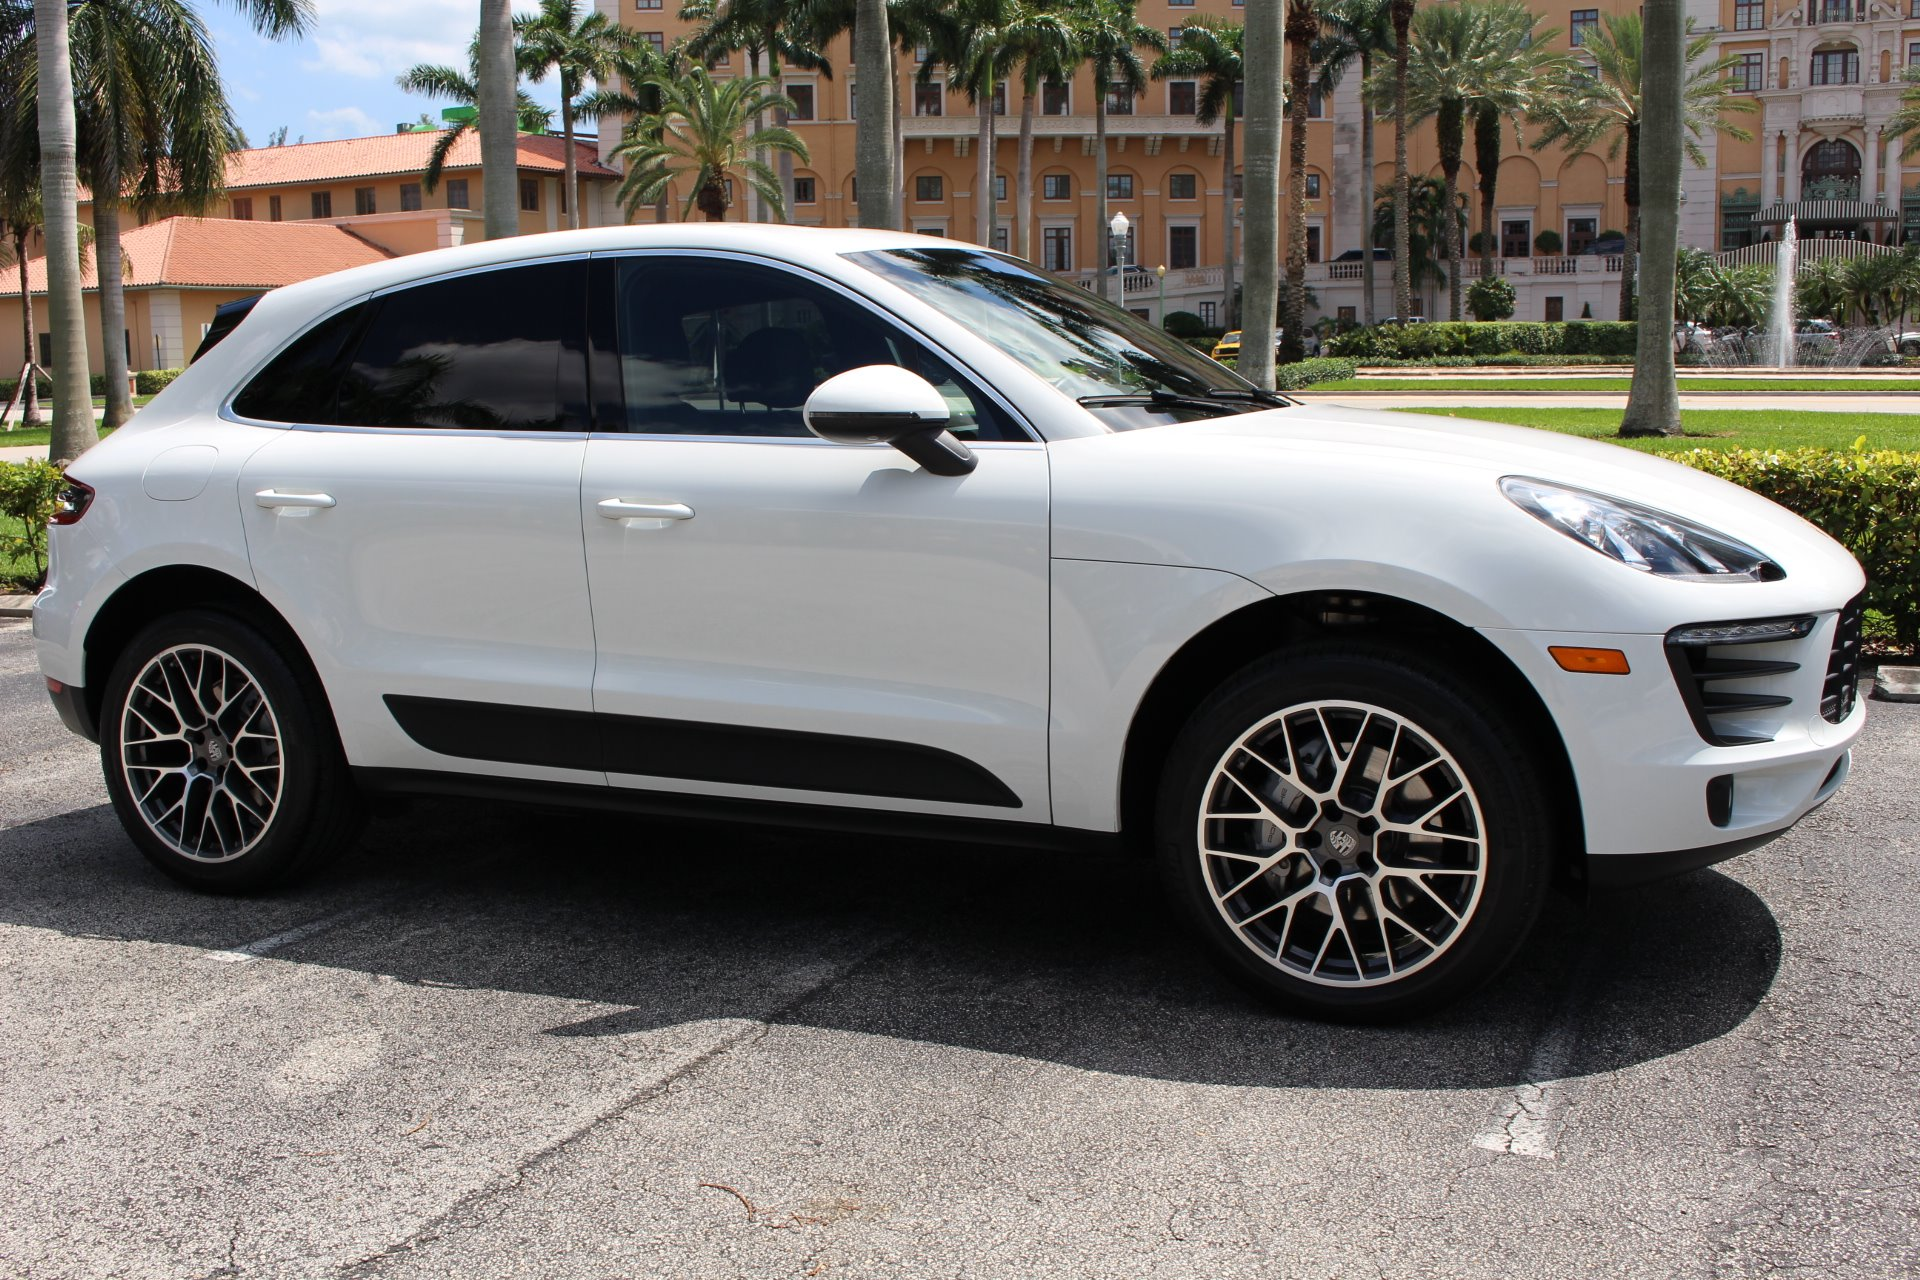 Used 2016 Porsche Macan S for sale Sold at The Gables Sports Cars in Miami FL 33146 3